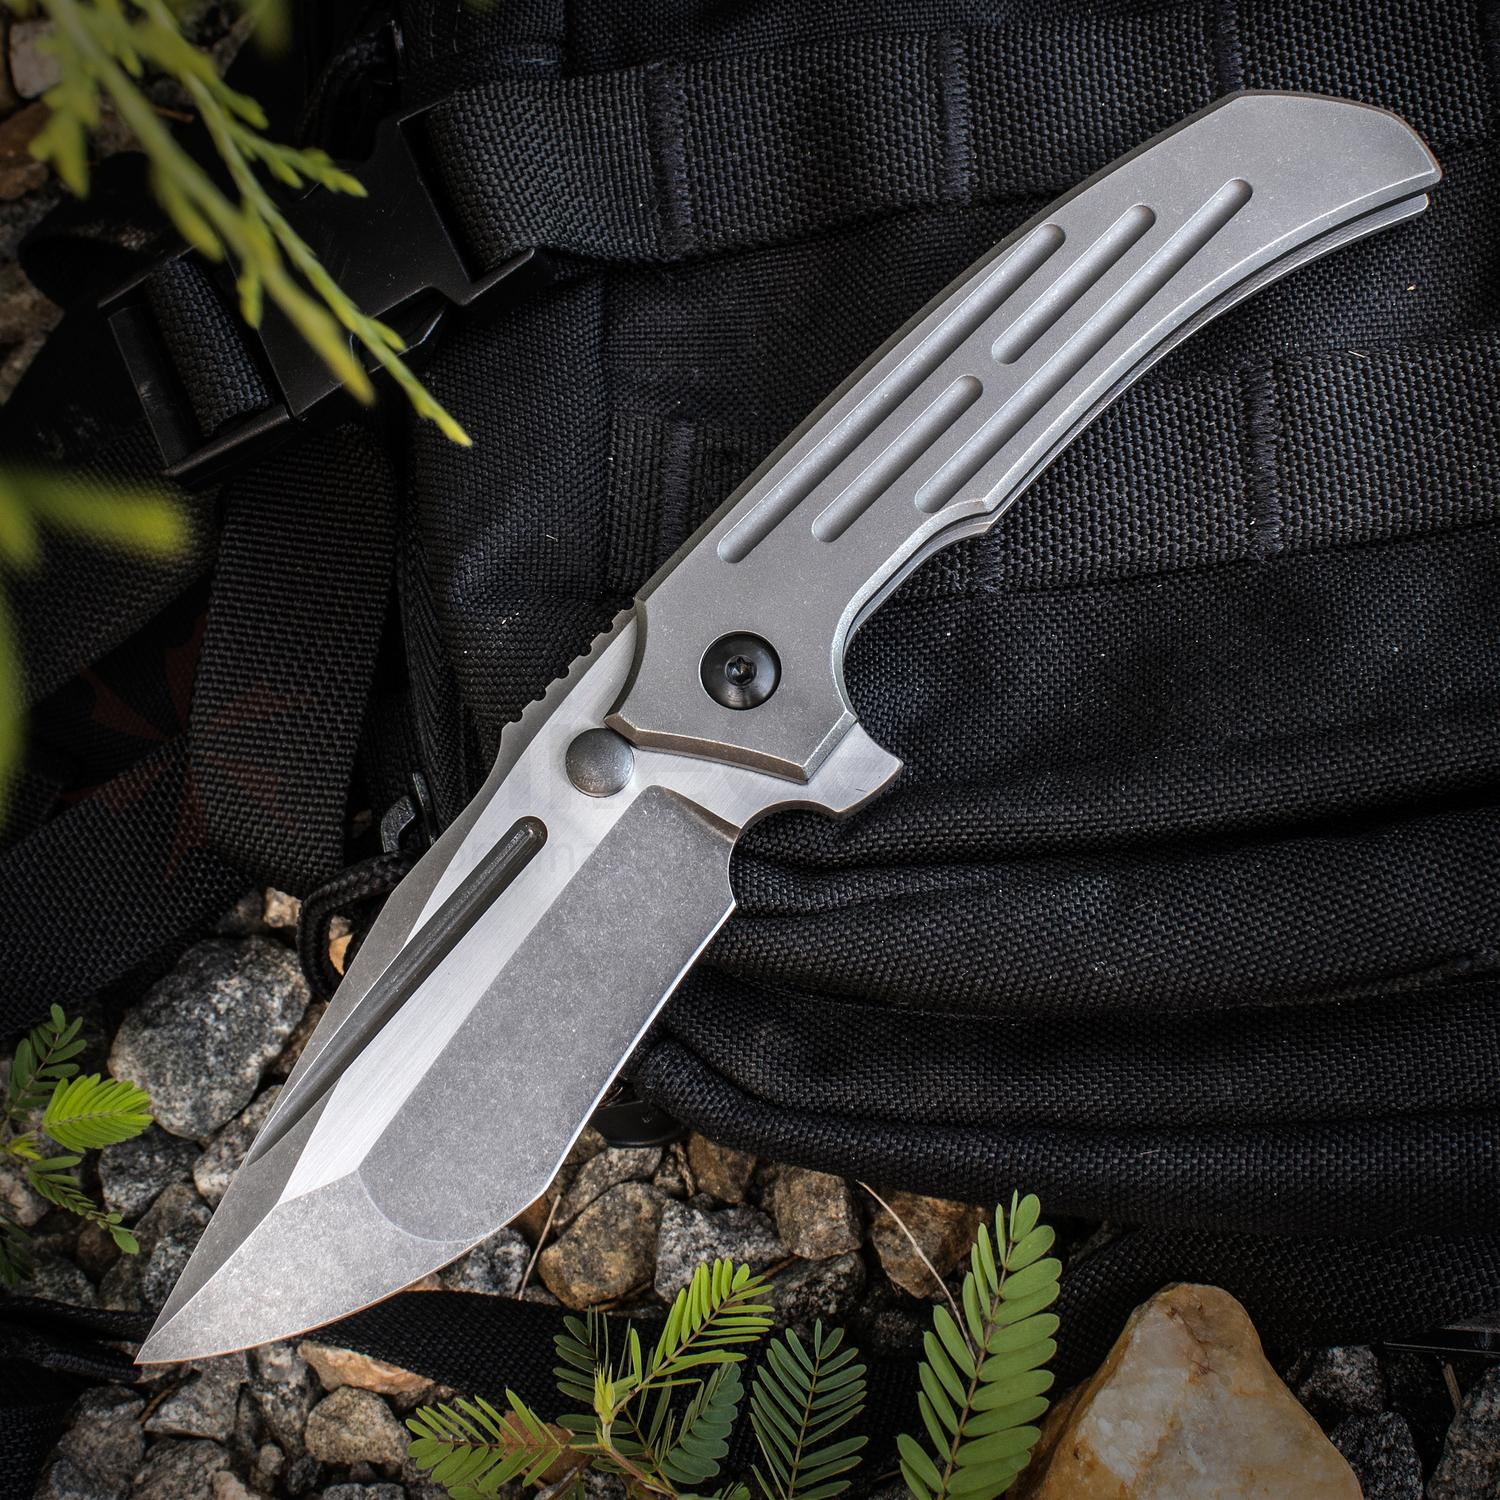 Peter Rassenti Custom Satori Integral Flipper 3.625 inch CTS-XHP Triple Ground Two-Tone Blade, Milled Titanium Handle, Mokuti Clip